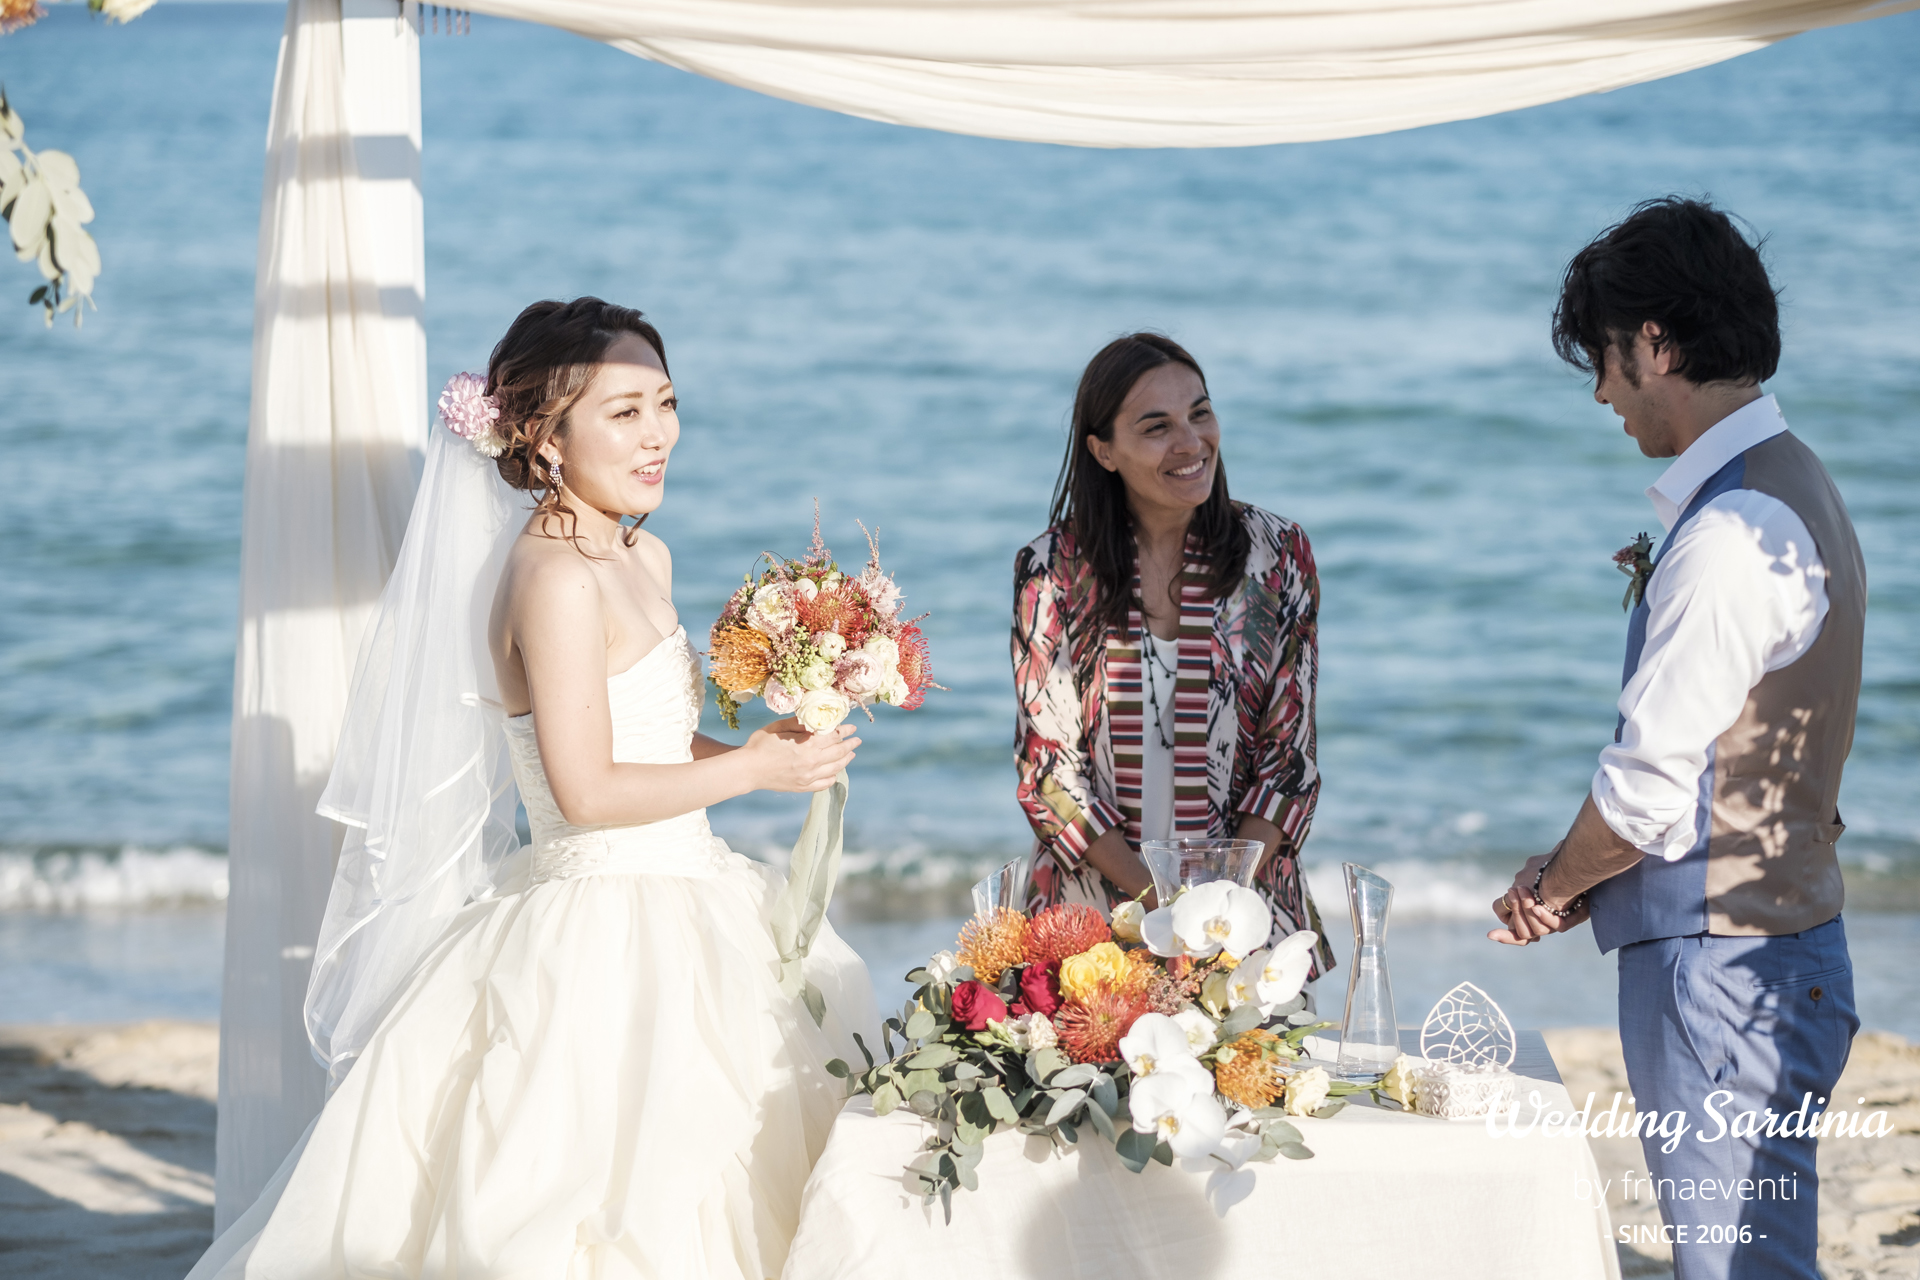 Japanese beach wedding costarei